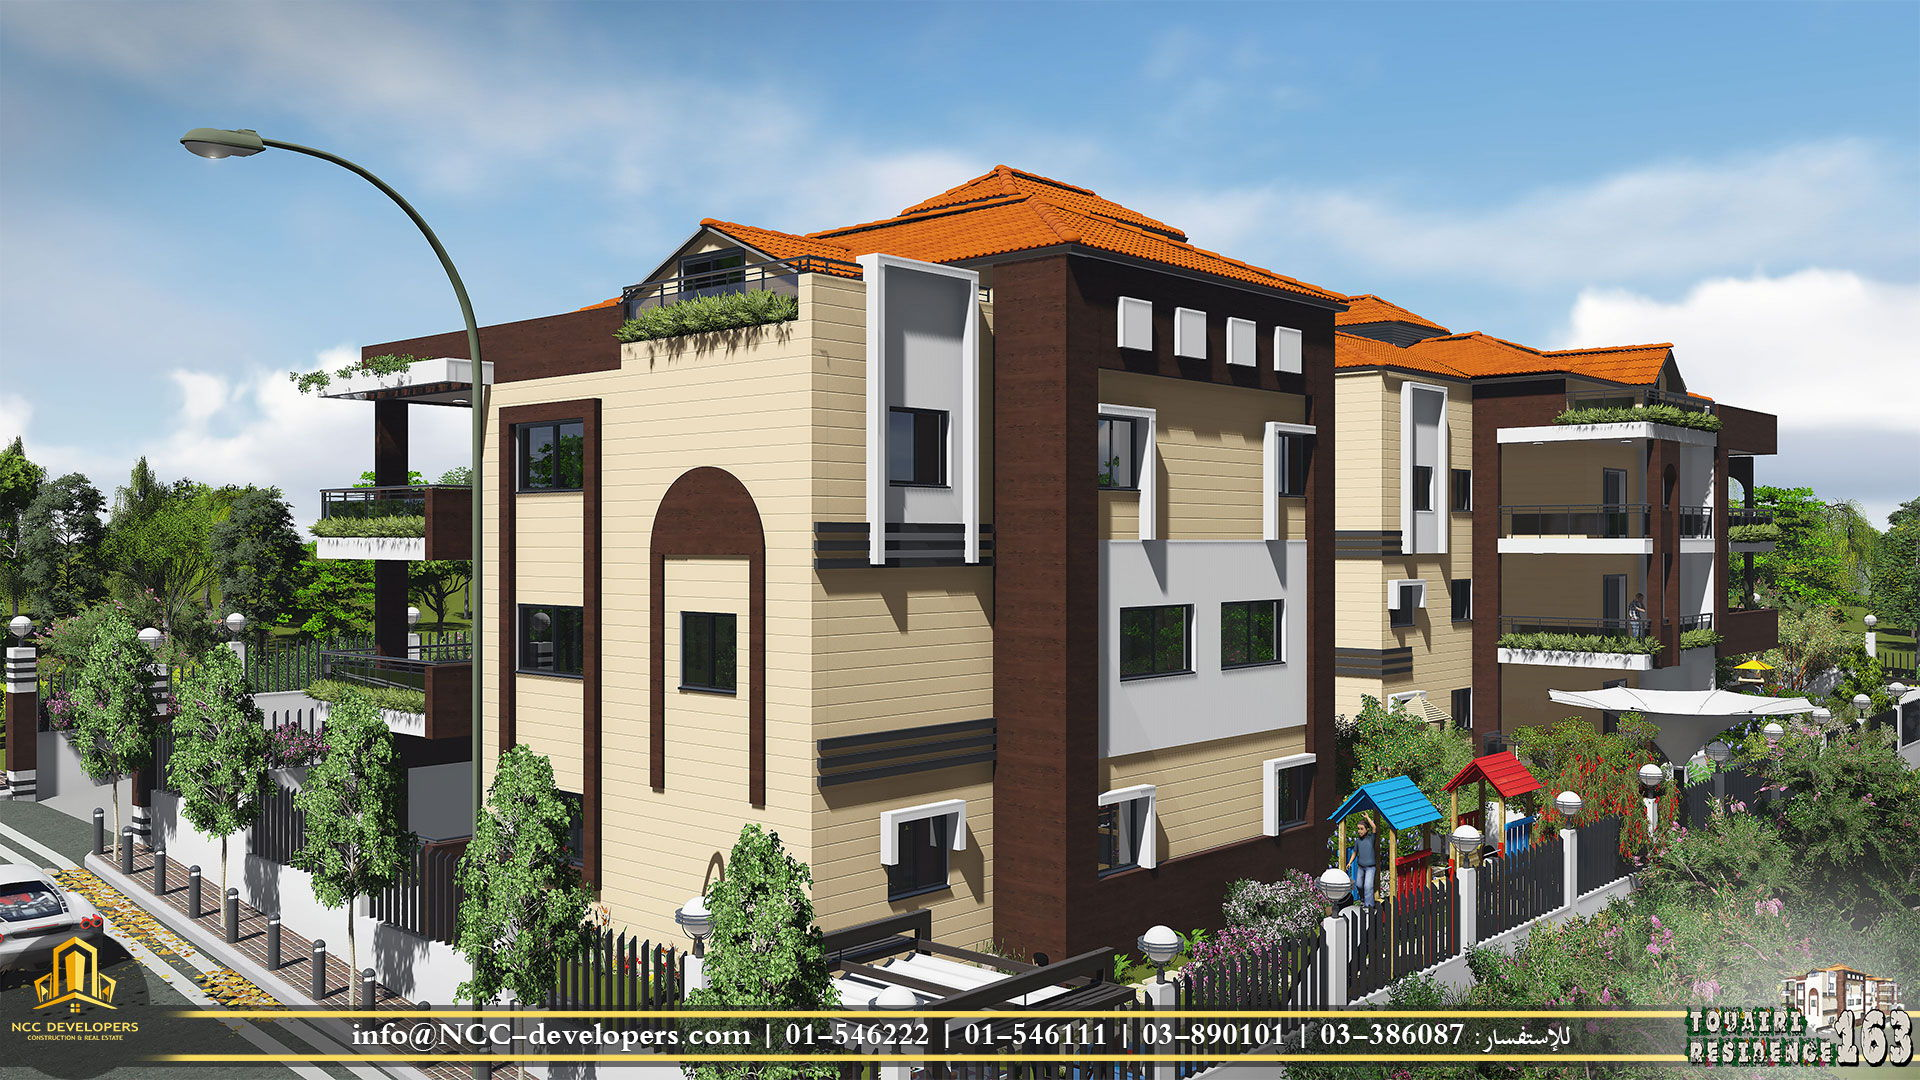 Architecture, engineering & rendering for Touairi Residential building 163.